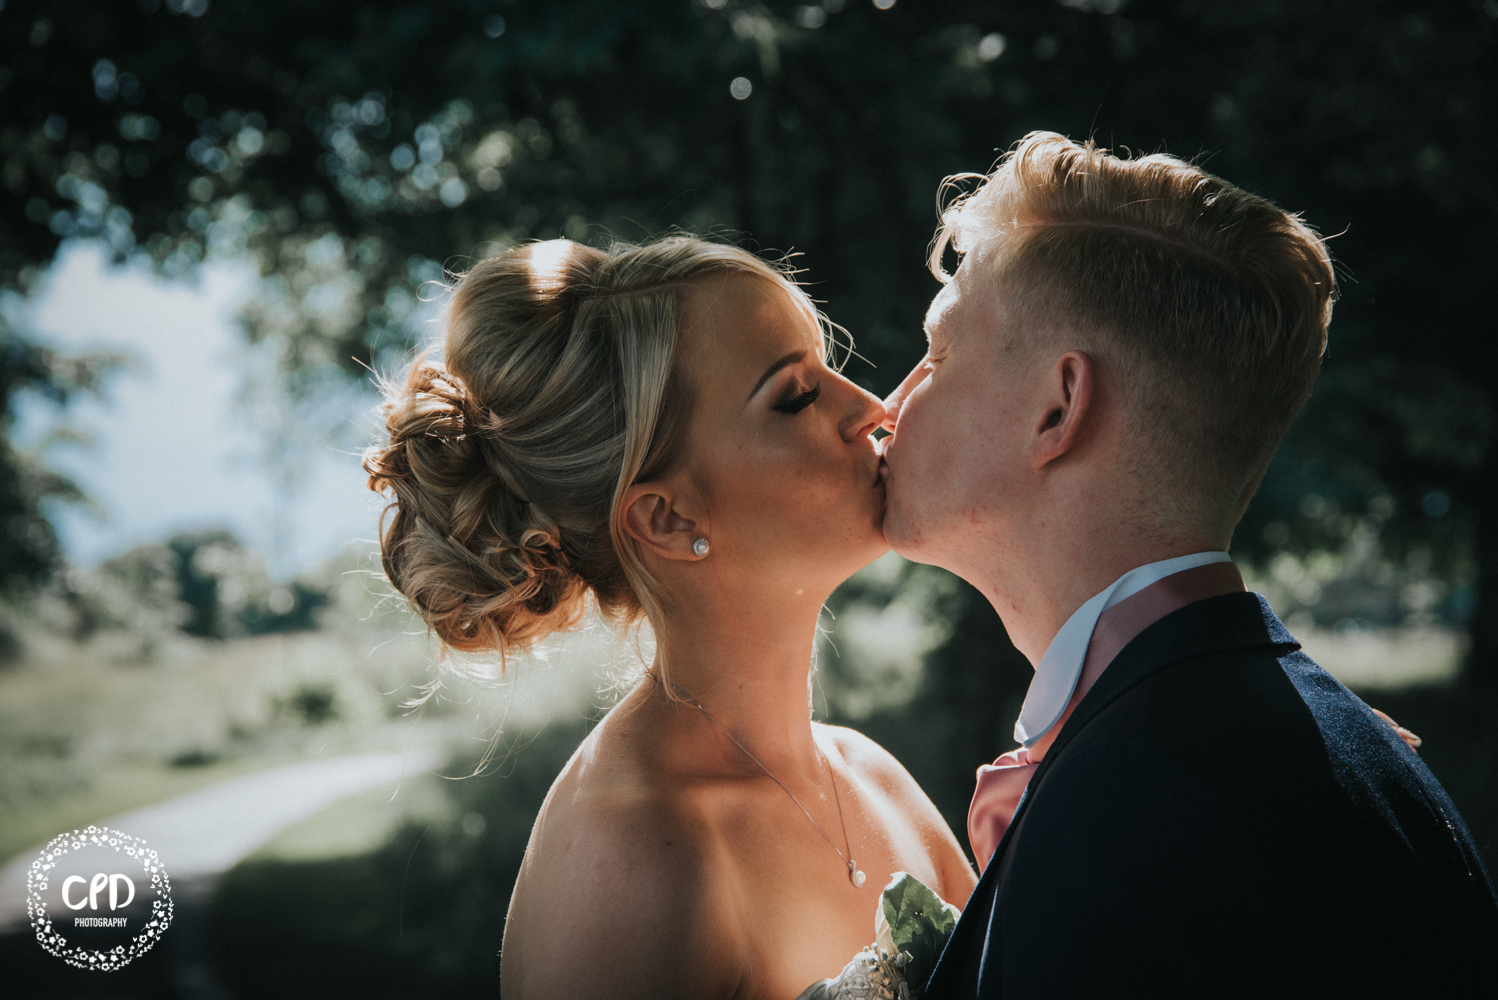 Bride and Groom portrait  - kissing